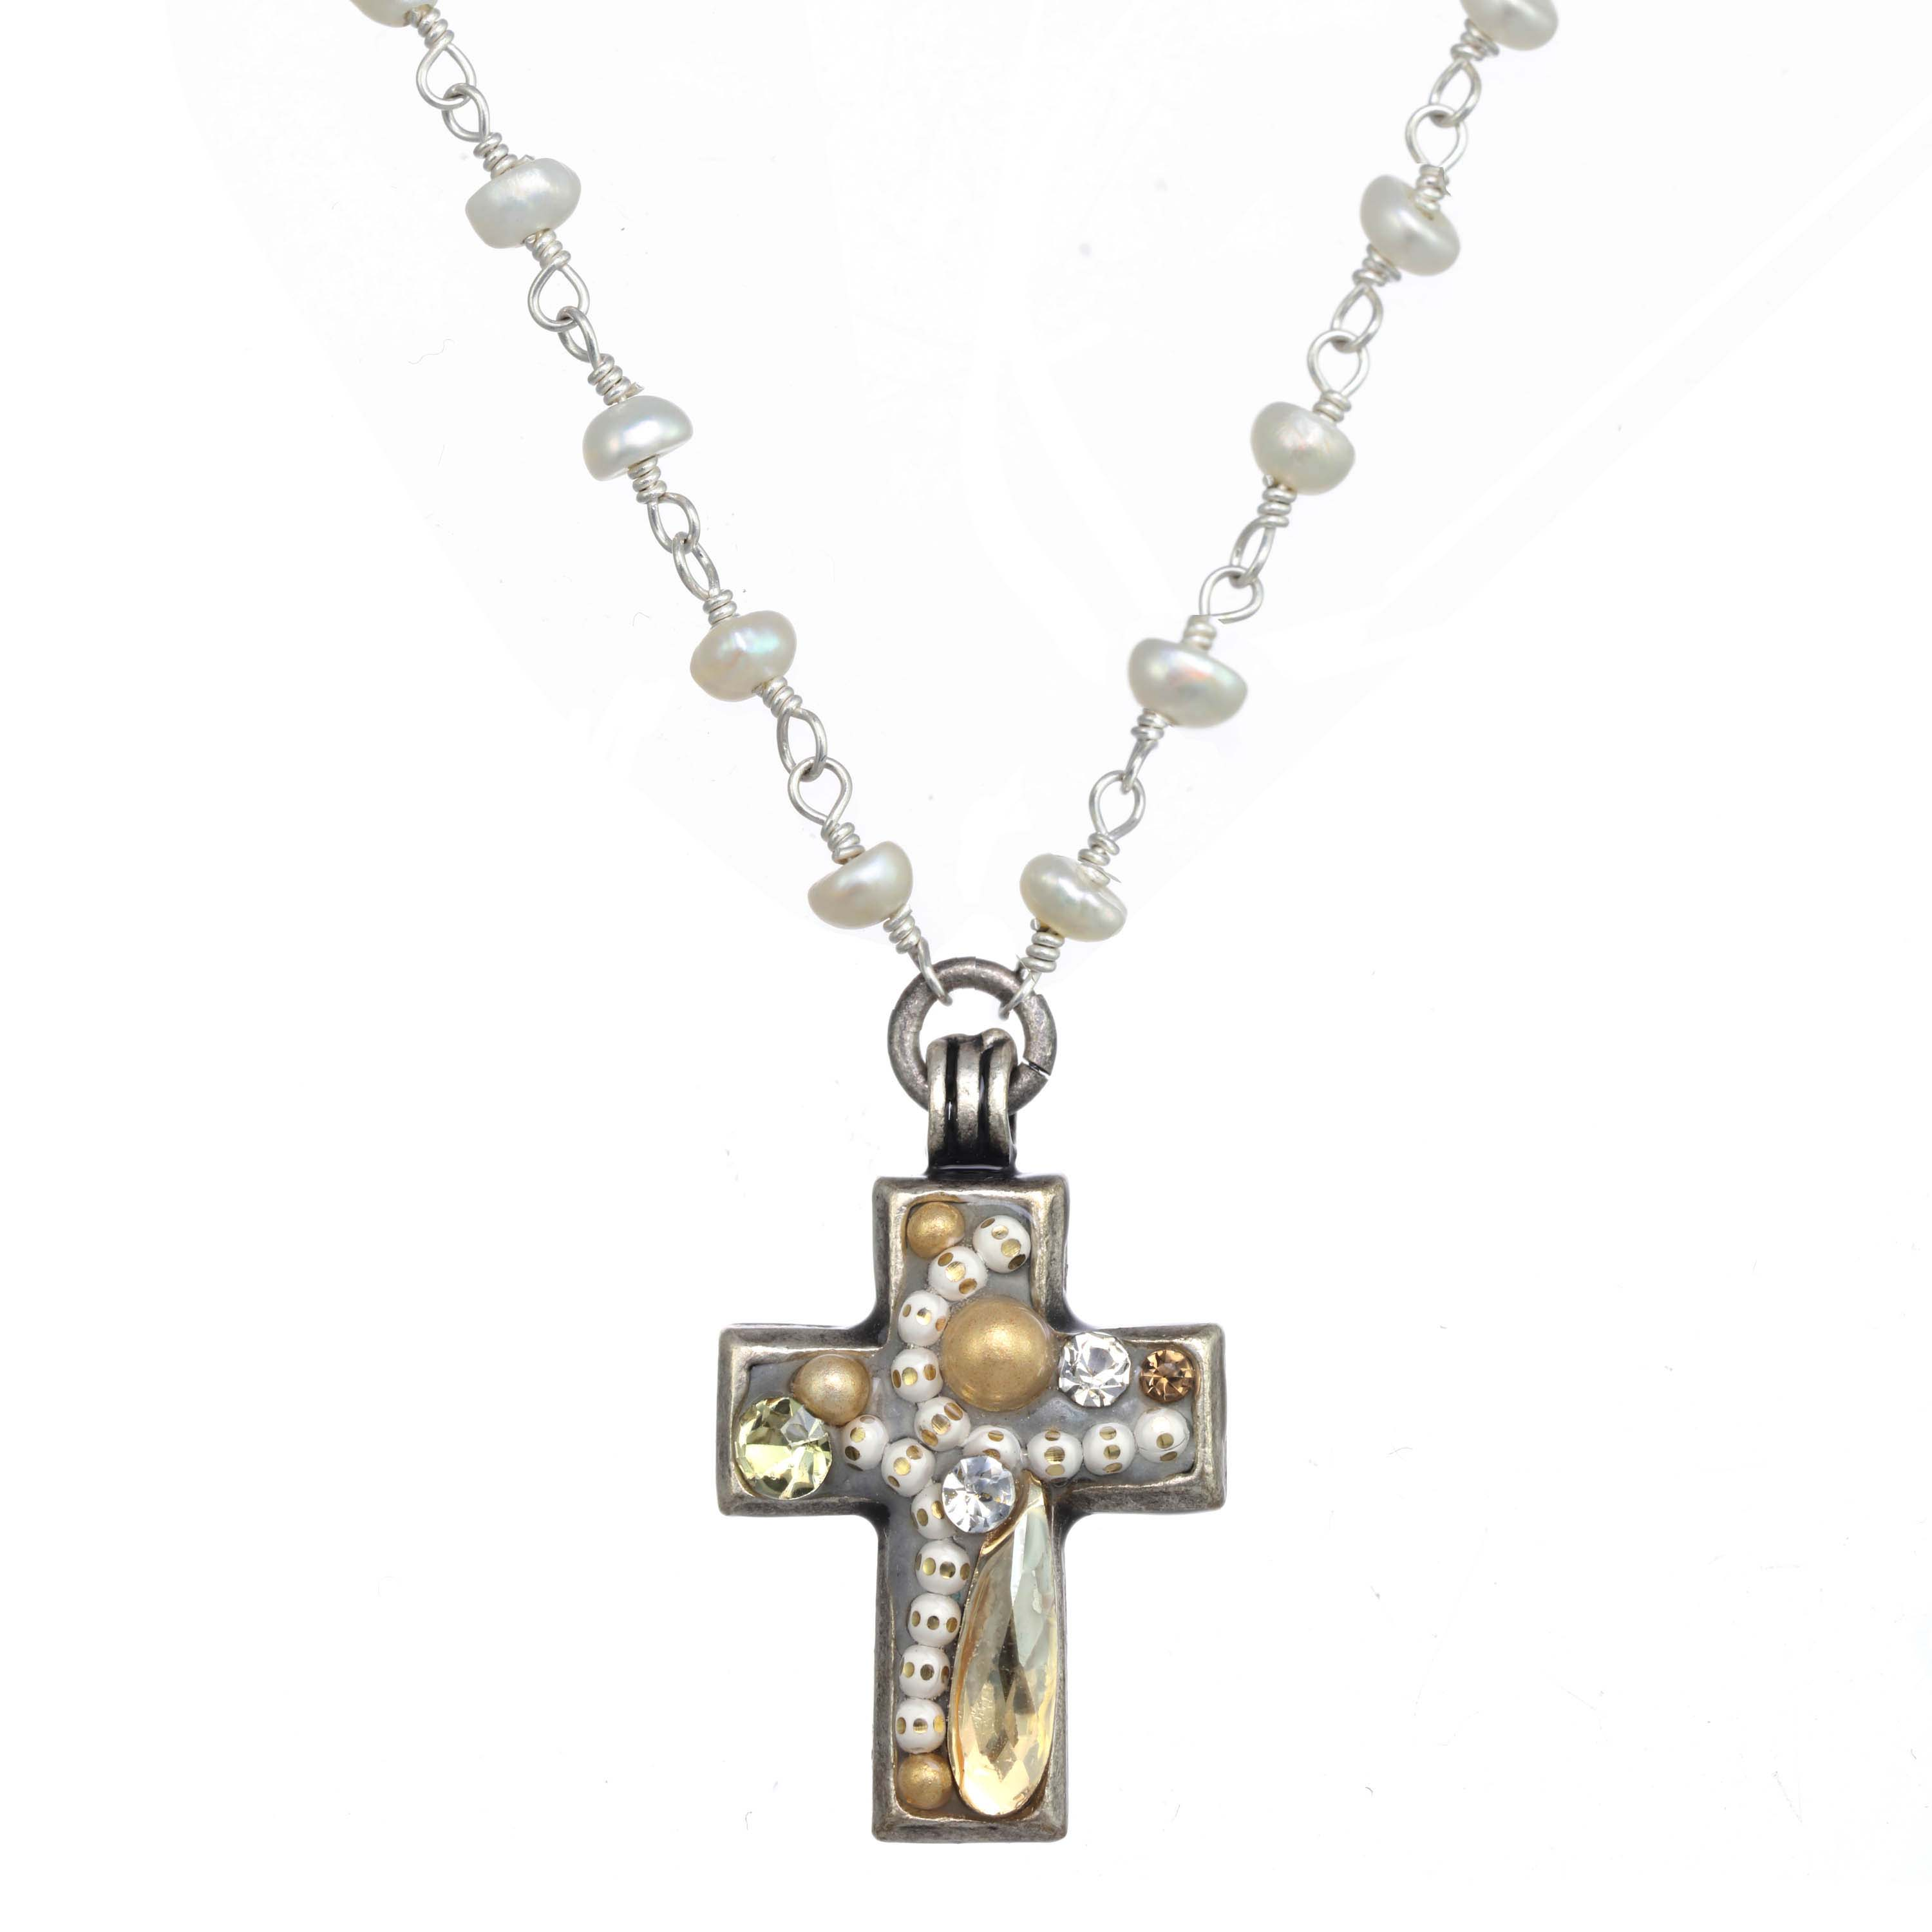 Moonlight Cross Necklace